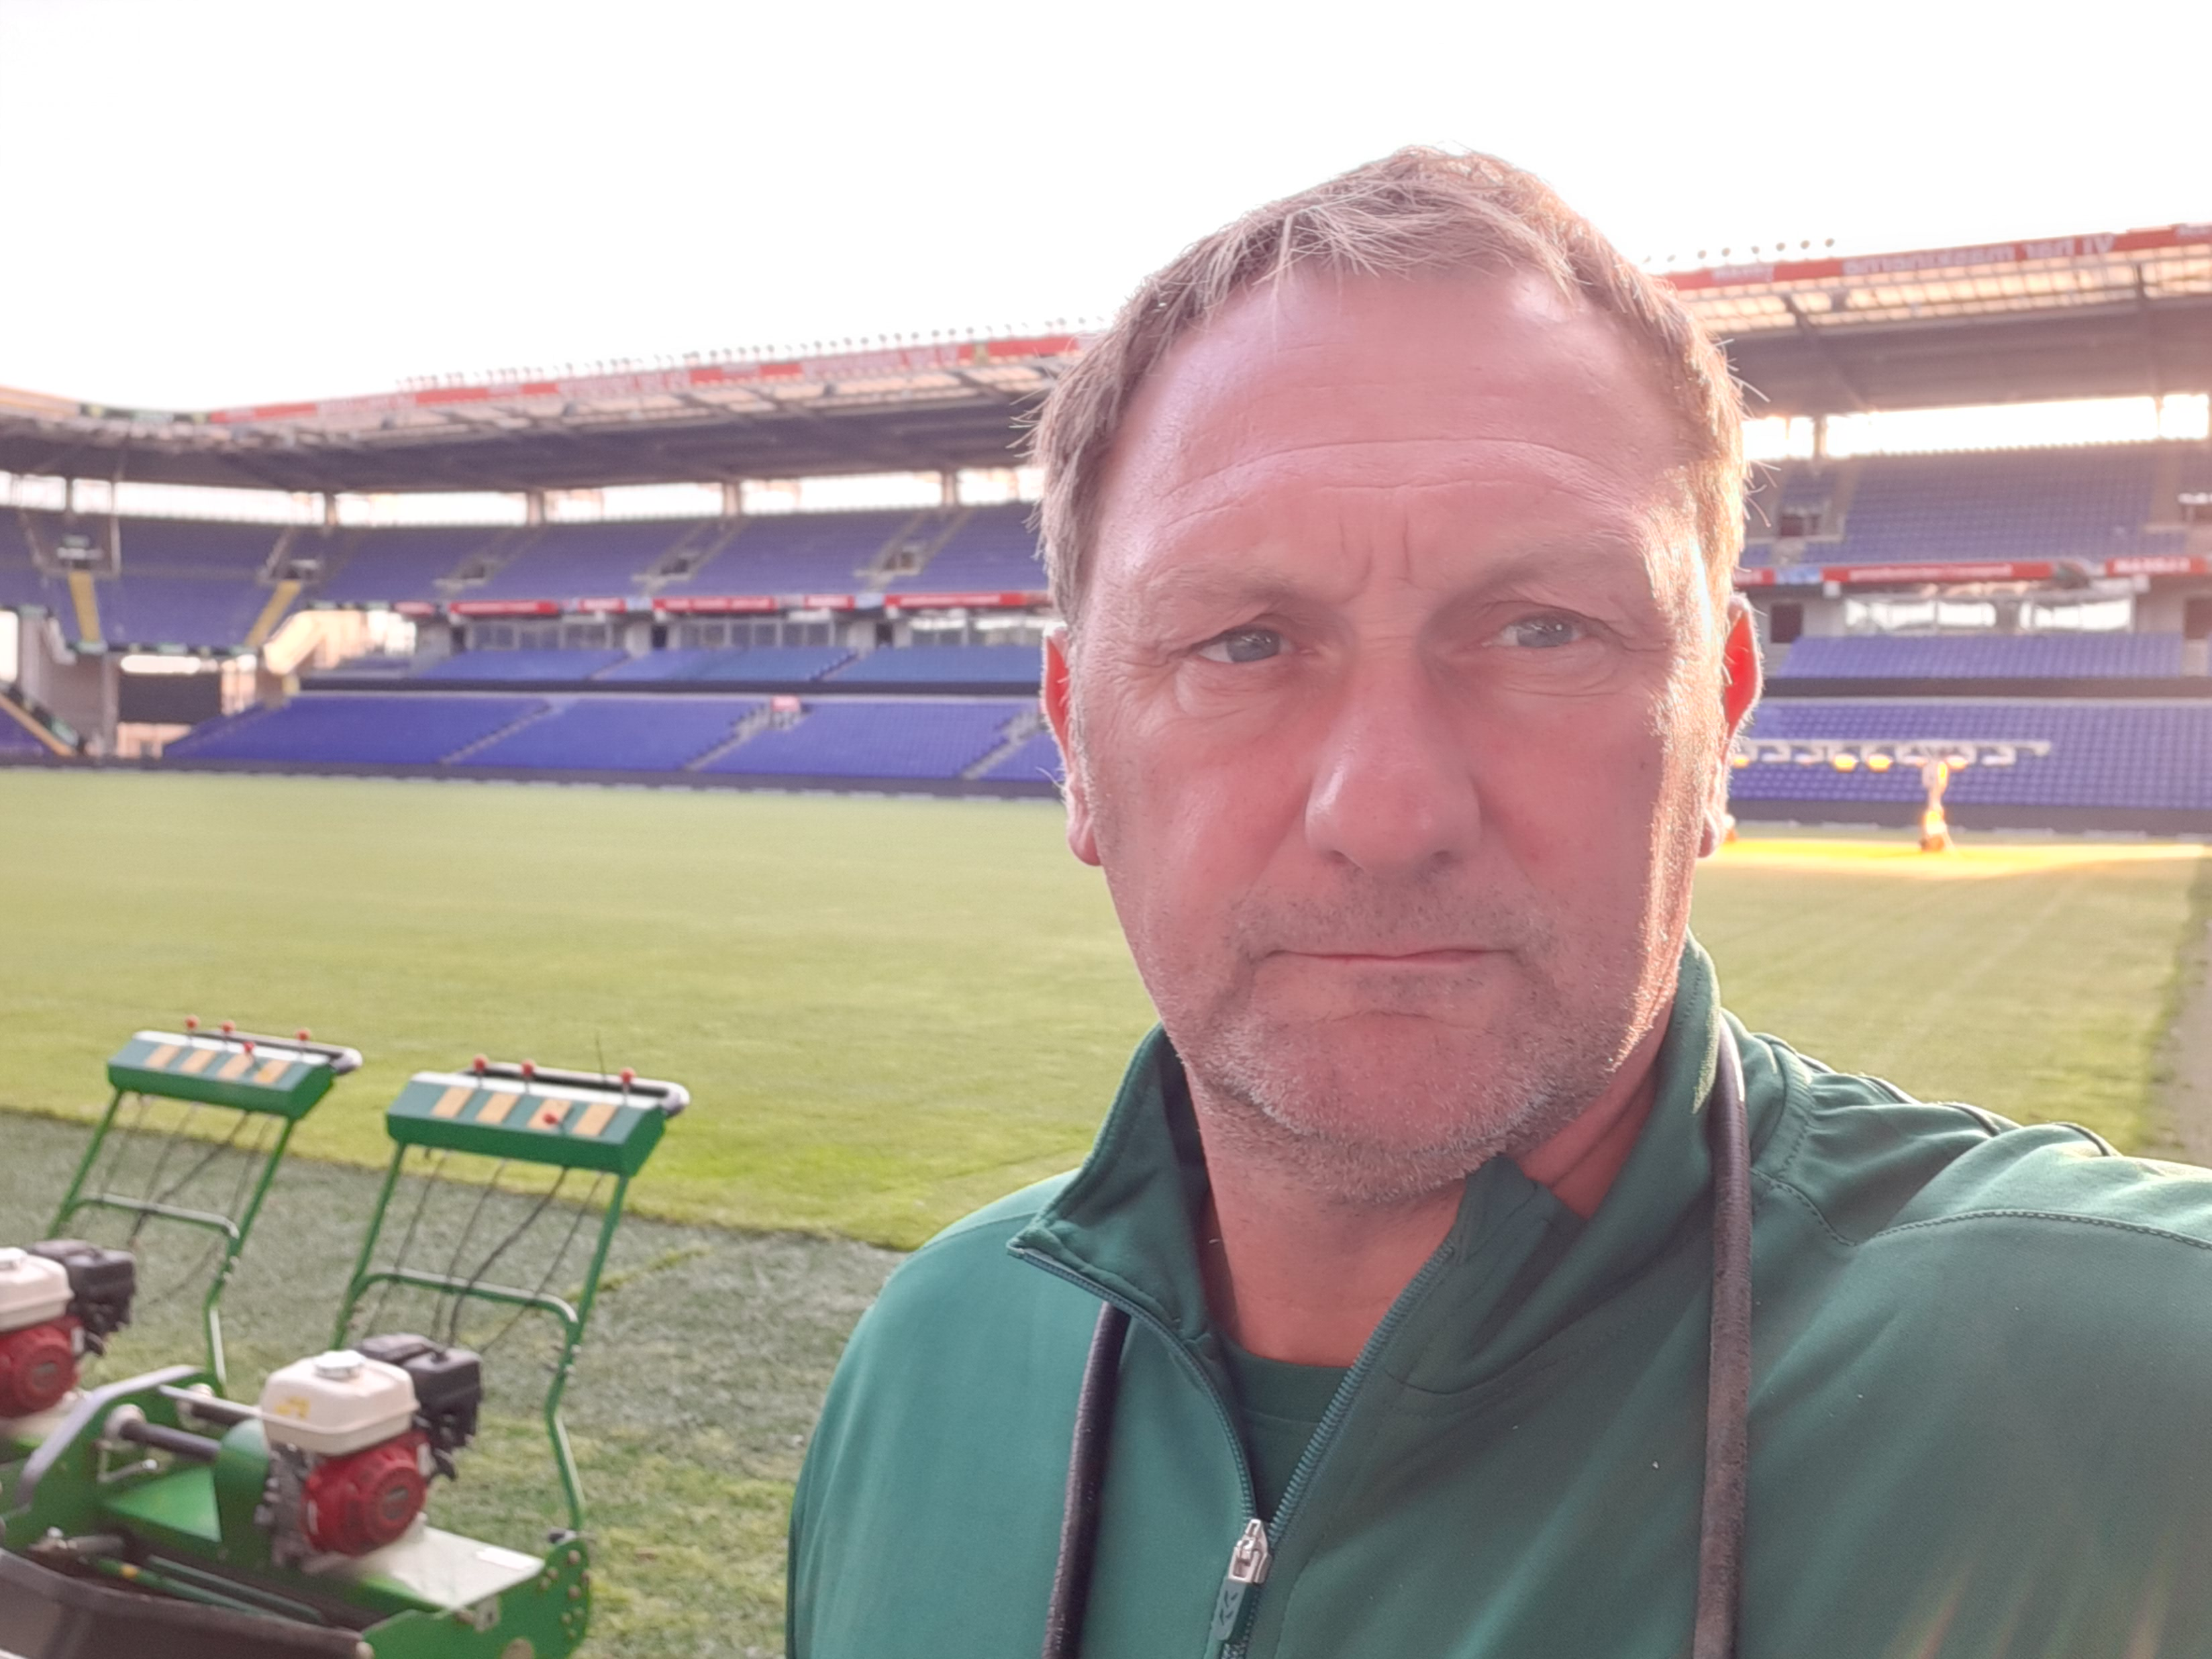 Chris Hague - a British groundsman abroad Background